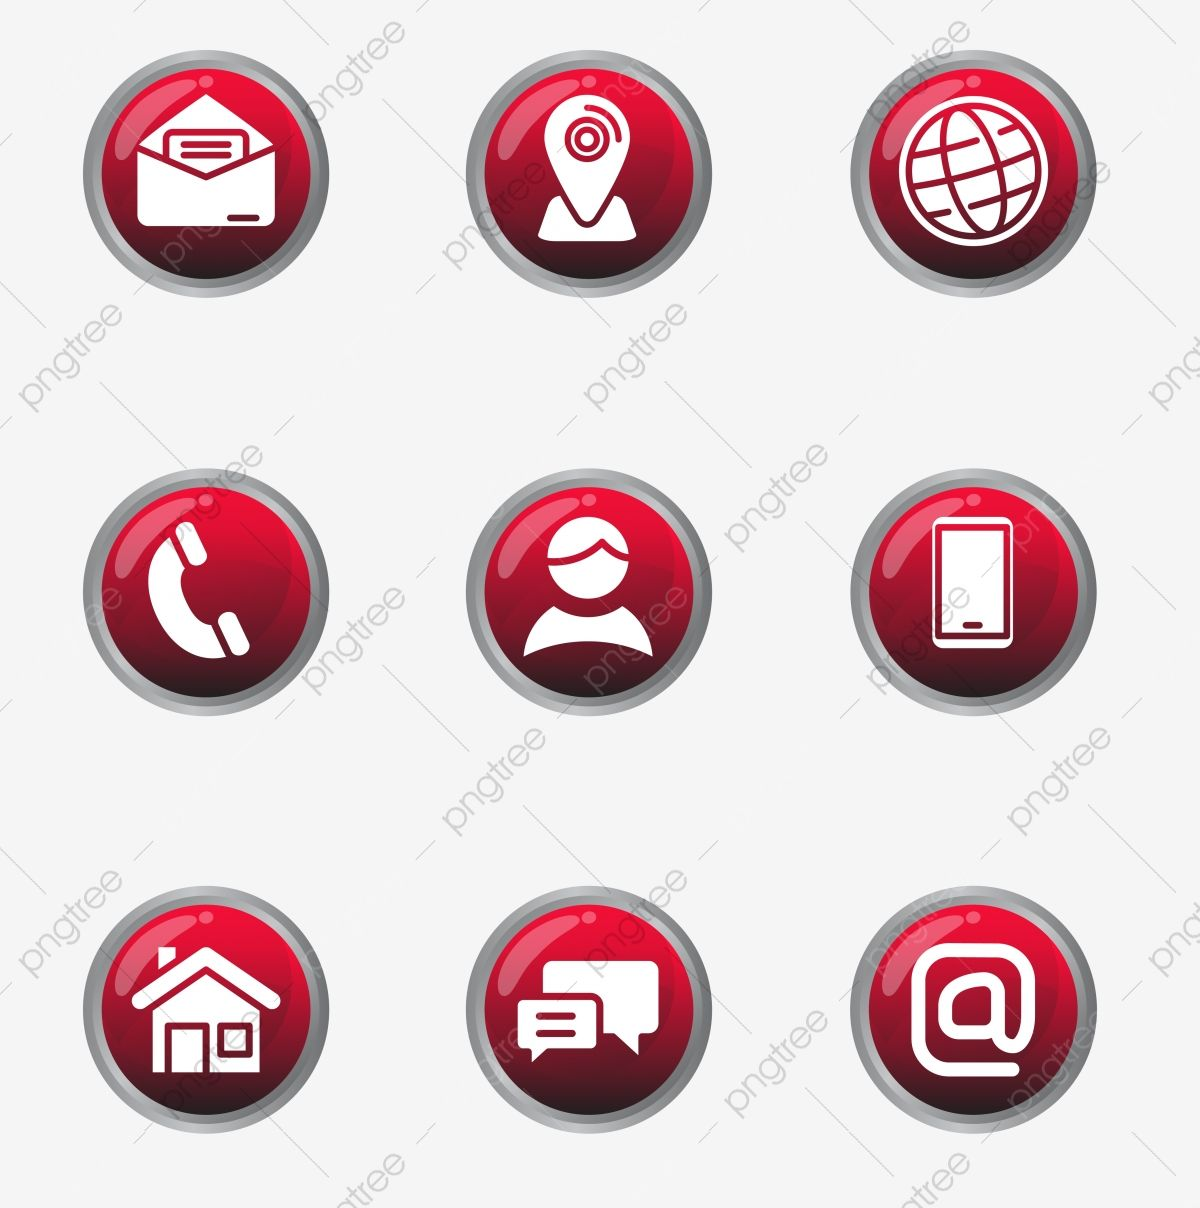 Set Of Contact Icon In Glossy Red Design Contact Icon Address Png And Vector With Transparent Background For Free Download Instagram Logo Red Design Icon Design